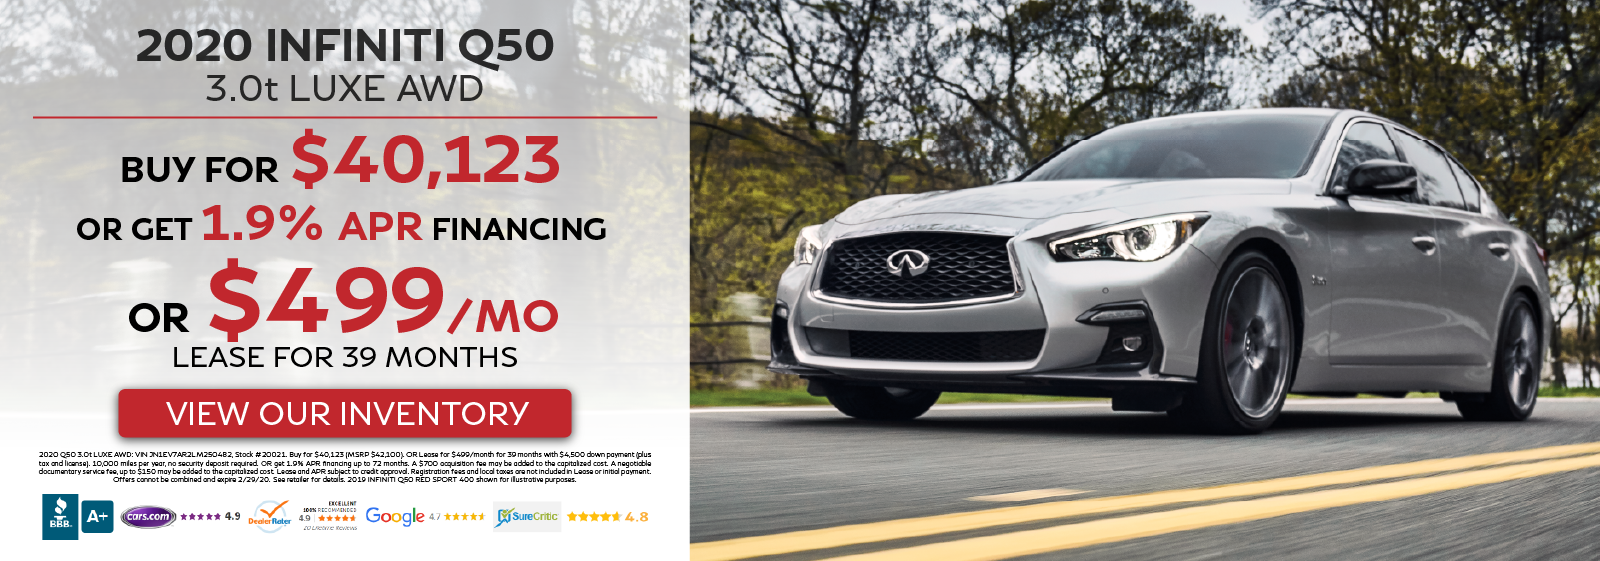 2020 Q50 3.0t LUXE AWD - Buy for $40,123 OR Get 1.9% APR Financing OR Lease for $499 per month for 39 months - View Our Inventory!